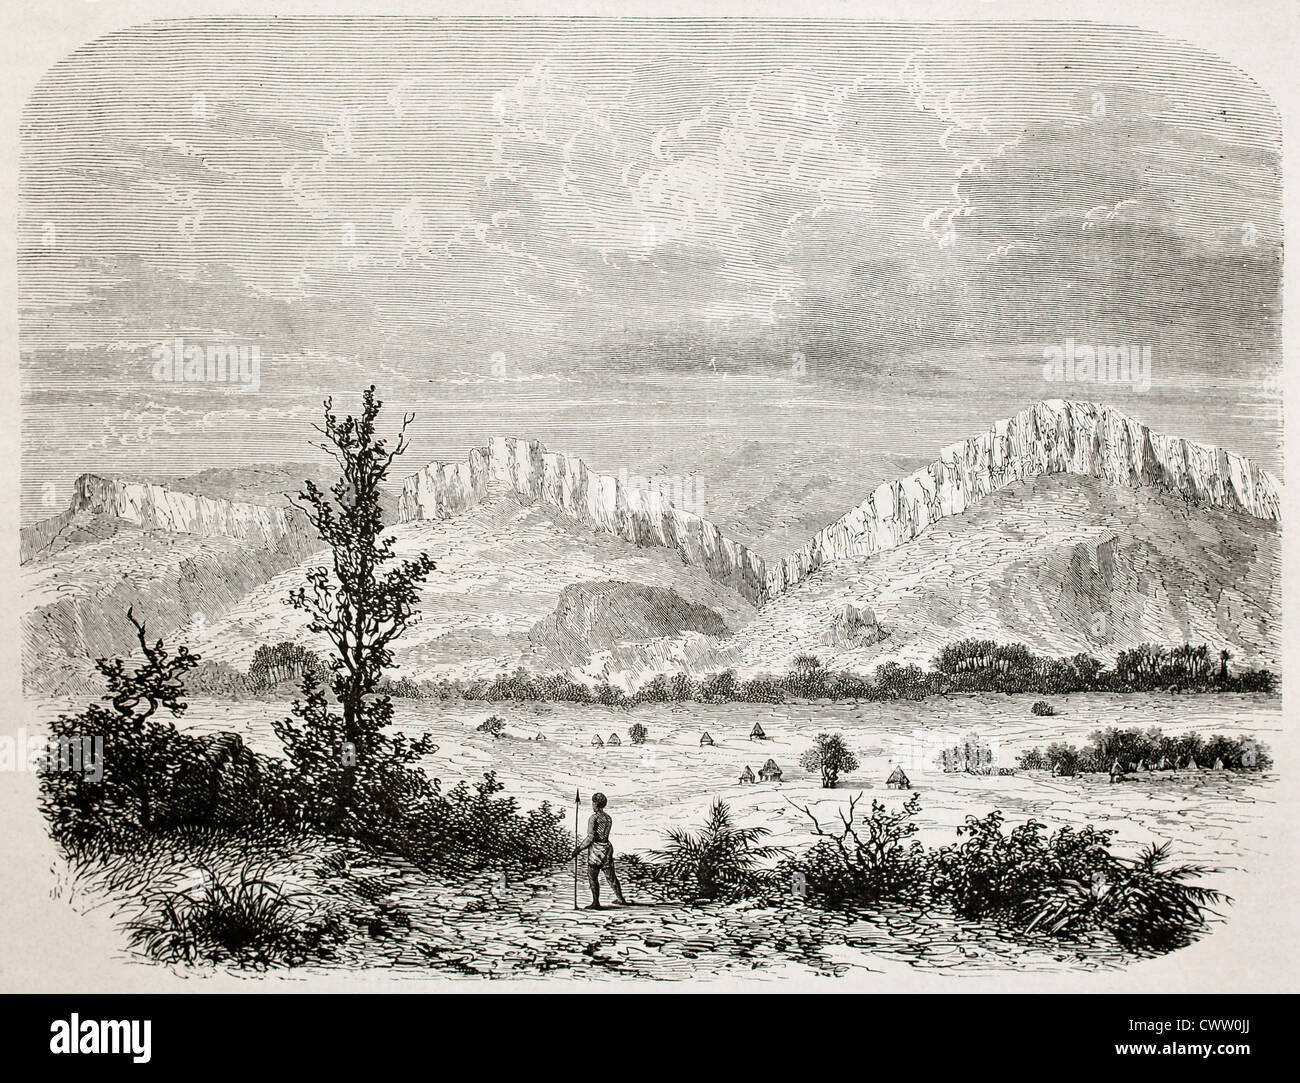 Old illustration of Outhoungu valley, southern Sudan - Stock Image